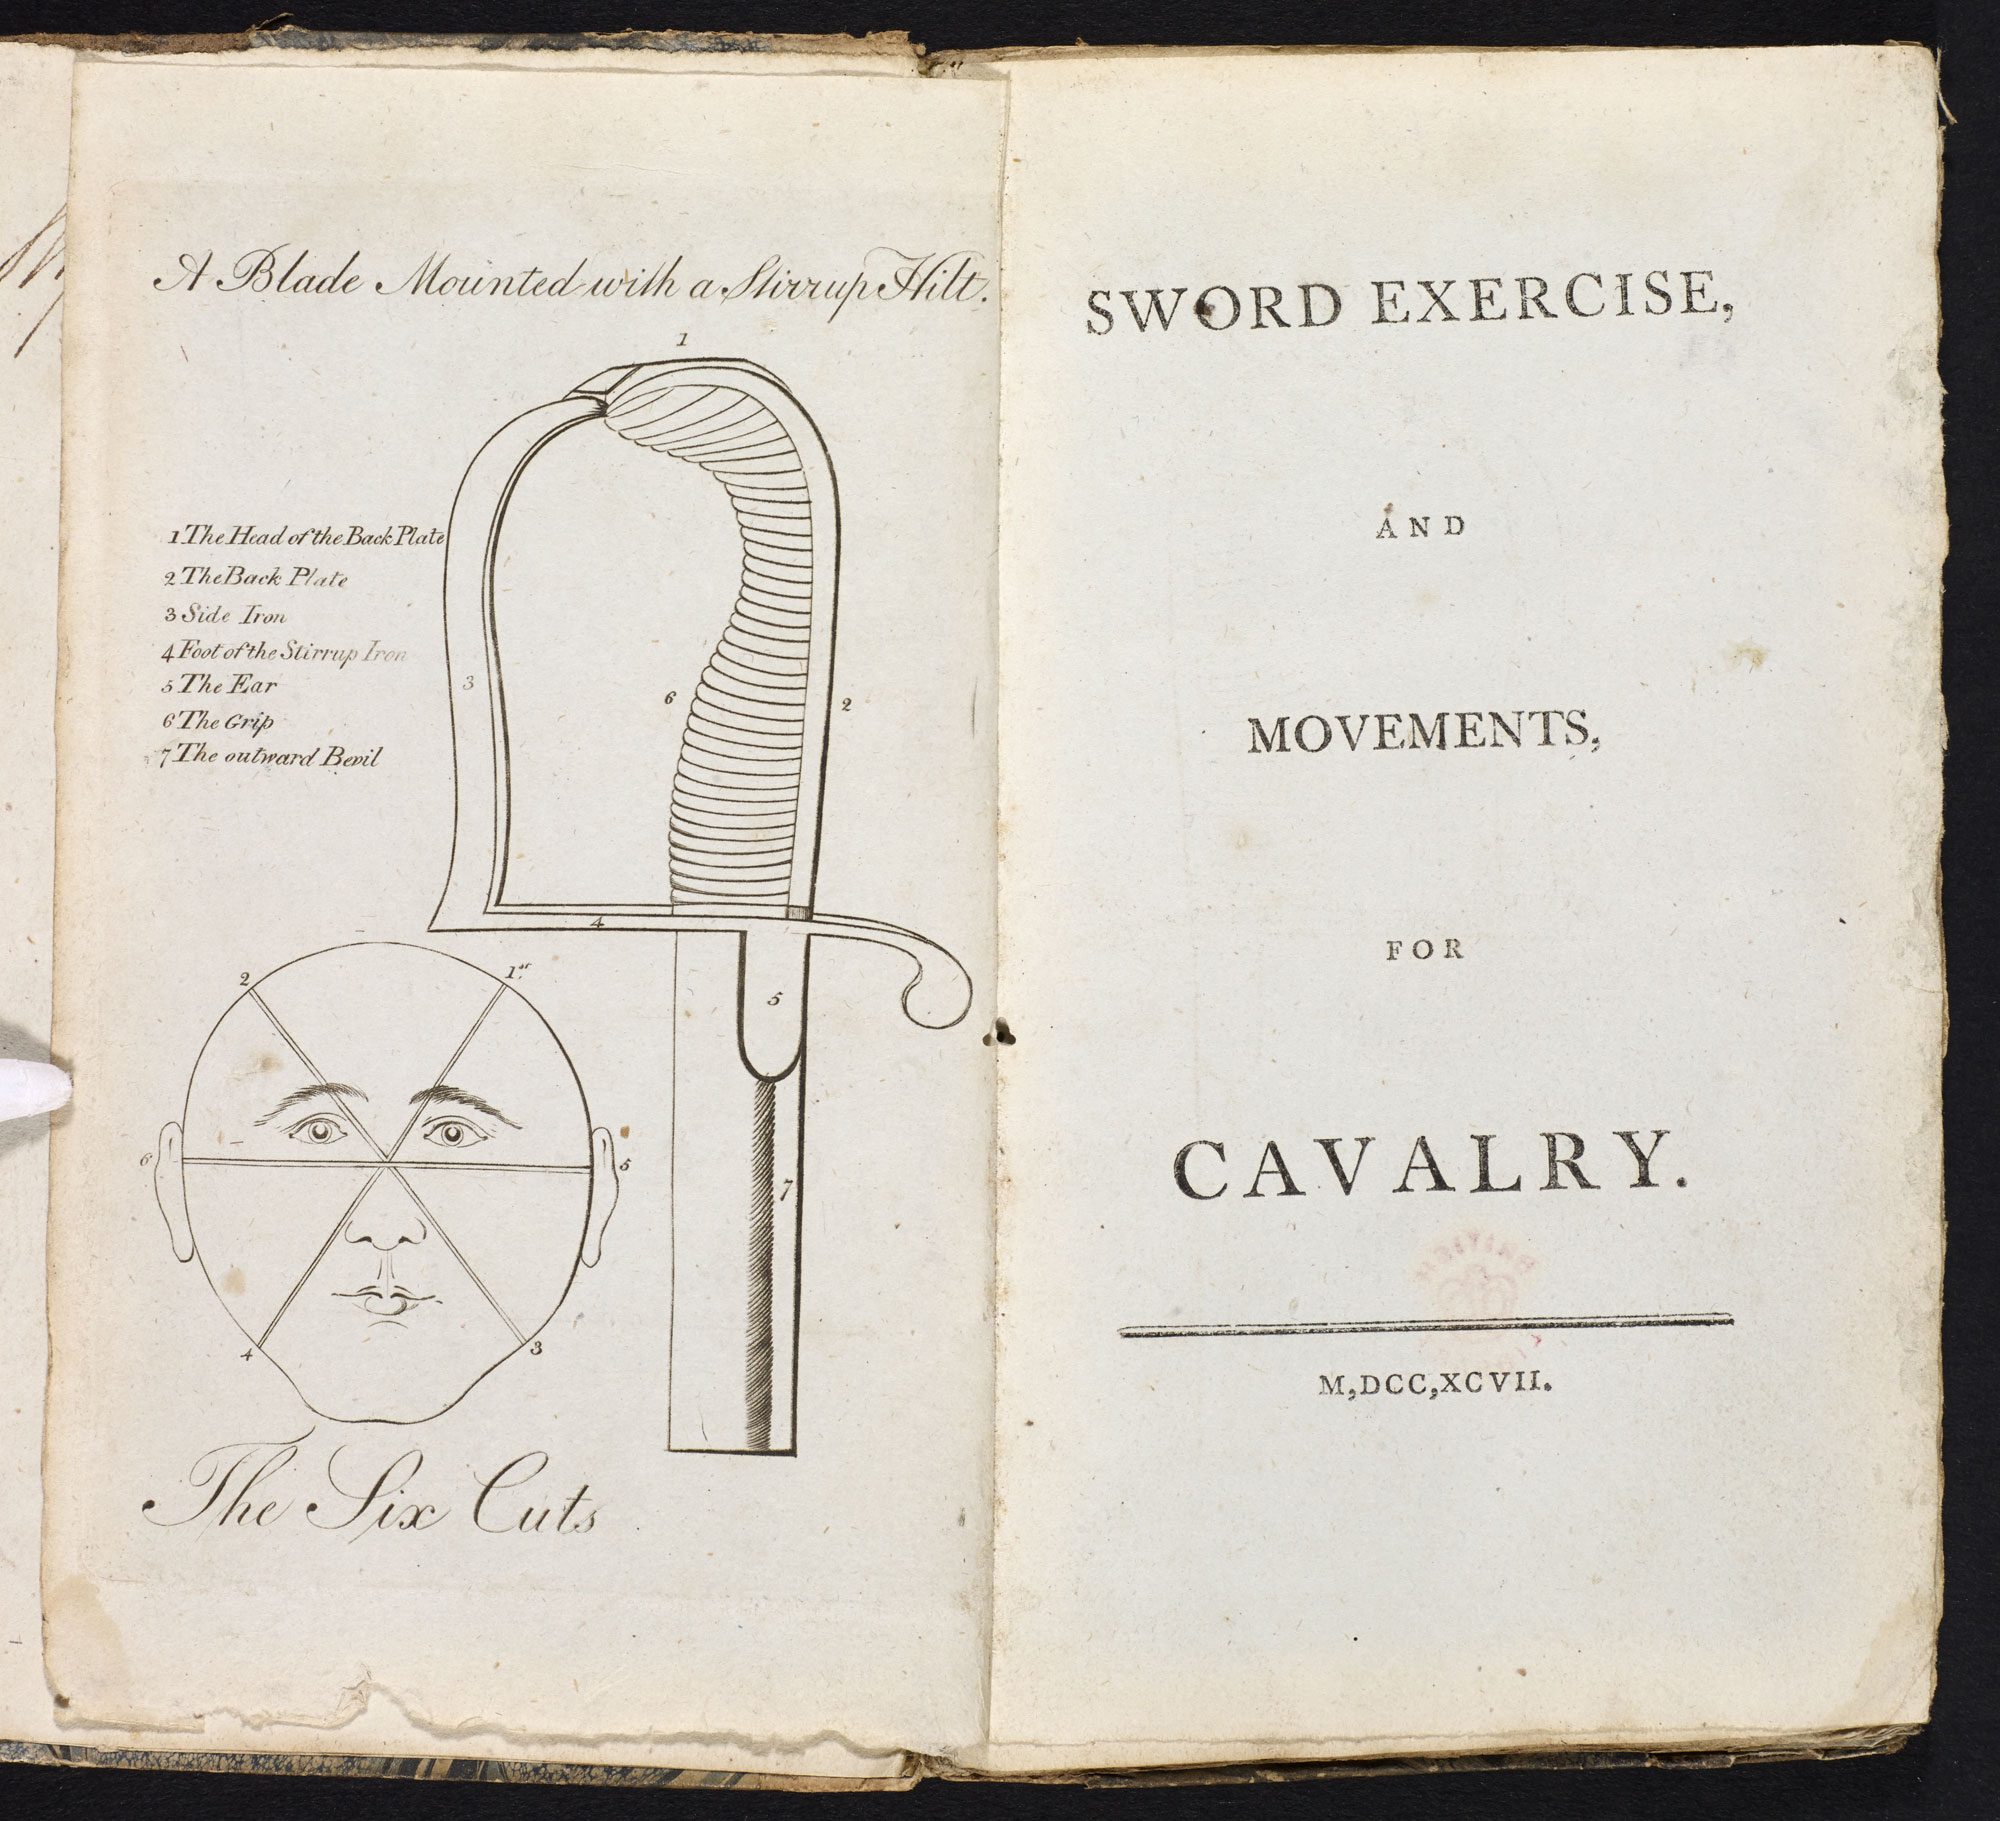 Sword exercise, and movements, for cavalry [page: frontispiece and title page]